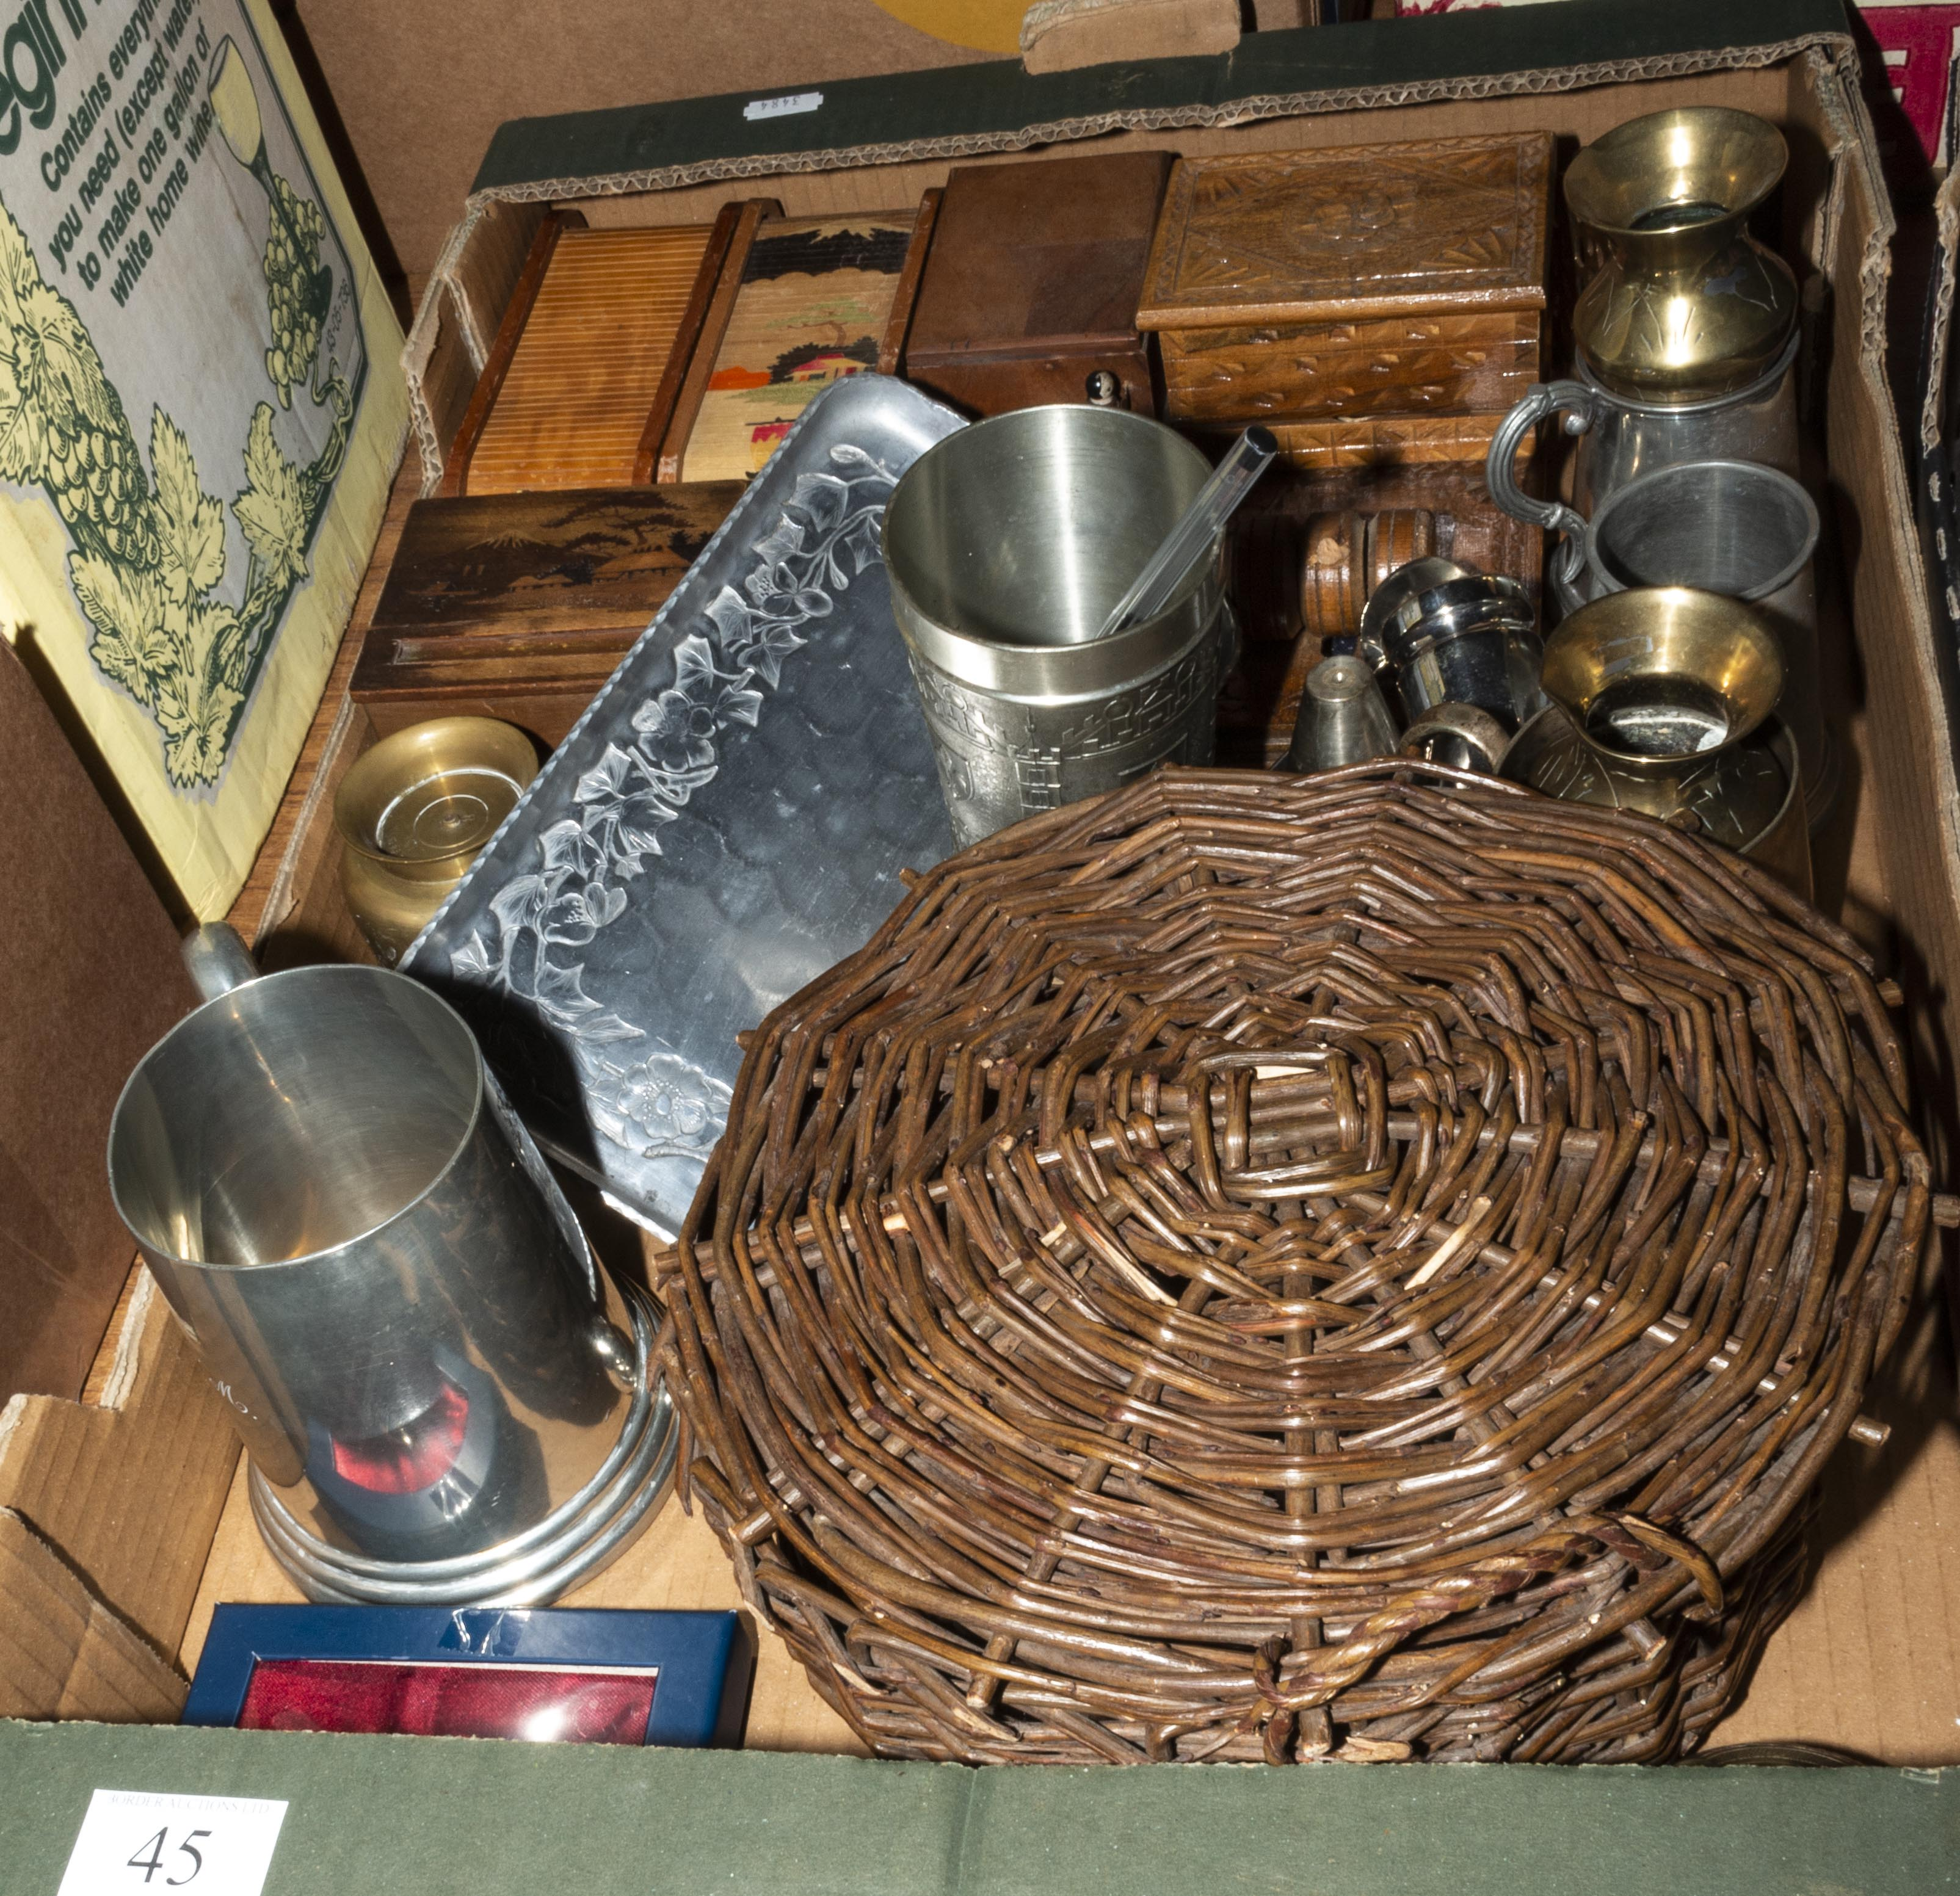 Lot 45 - A box containing metal ware and wooden items